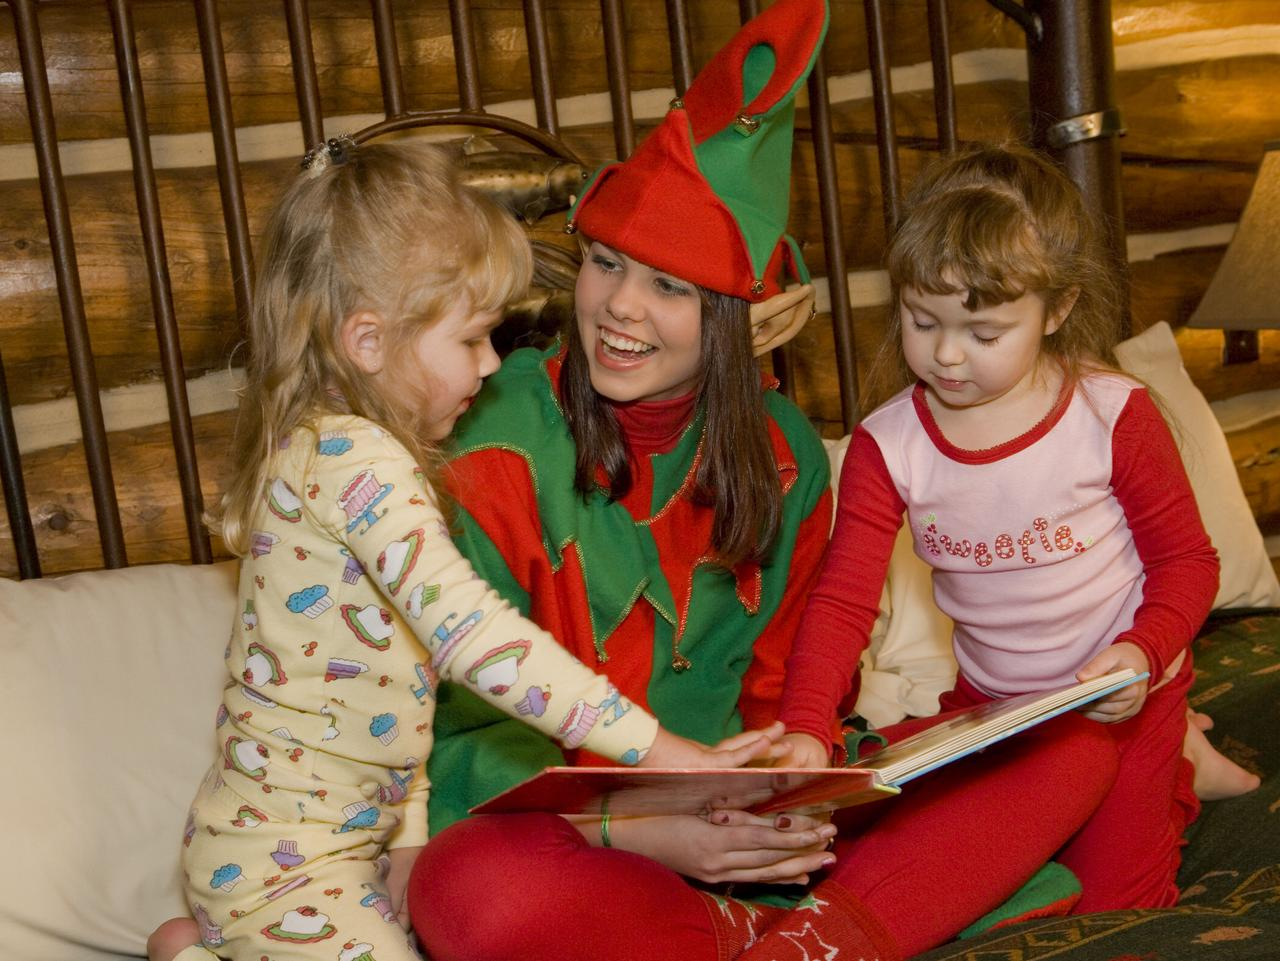 The Elf tuck-in service at Big Cedar Lodge.